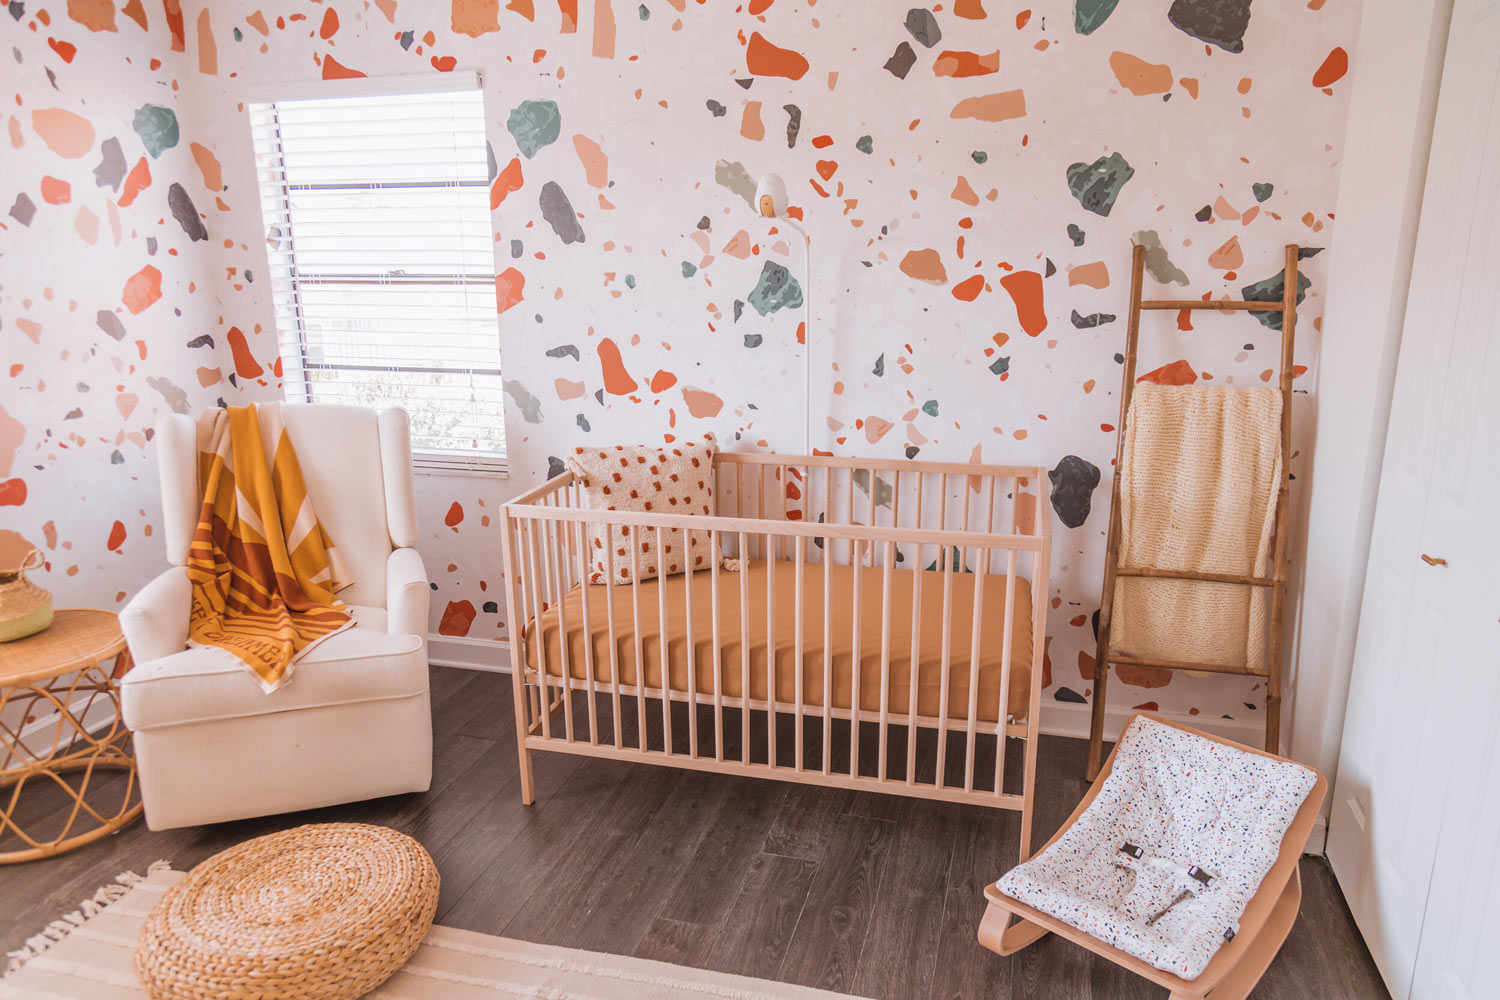 Warm tone gender neutral baby nursery interior room, with light wood ikea crib, livettes terrazzo removable wallpaper, eclectic bohemian interior style